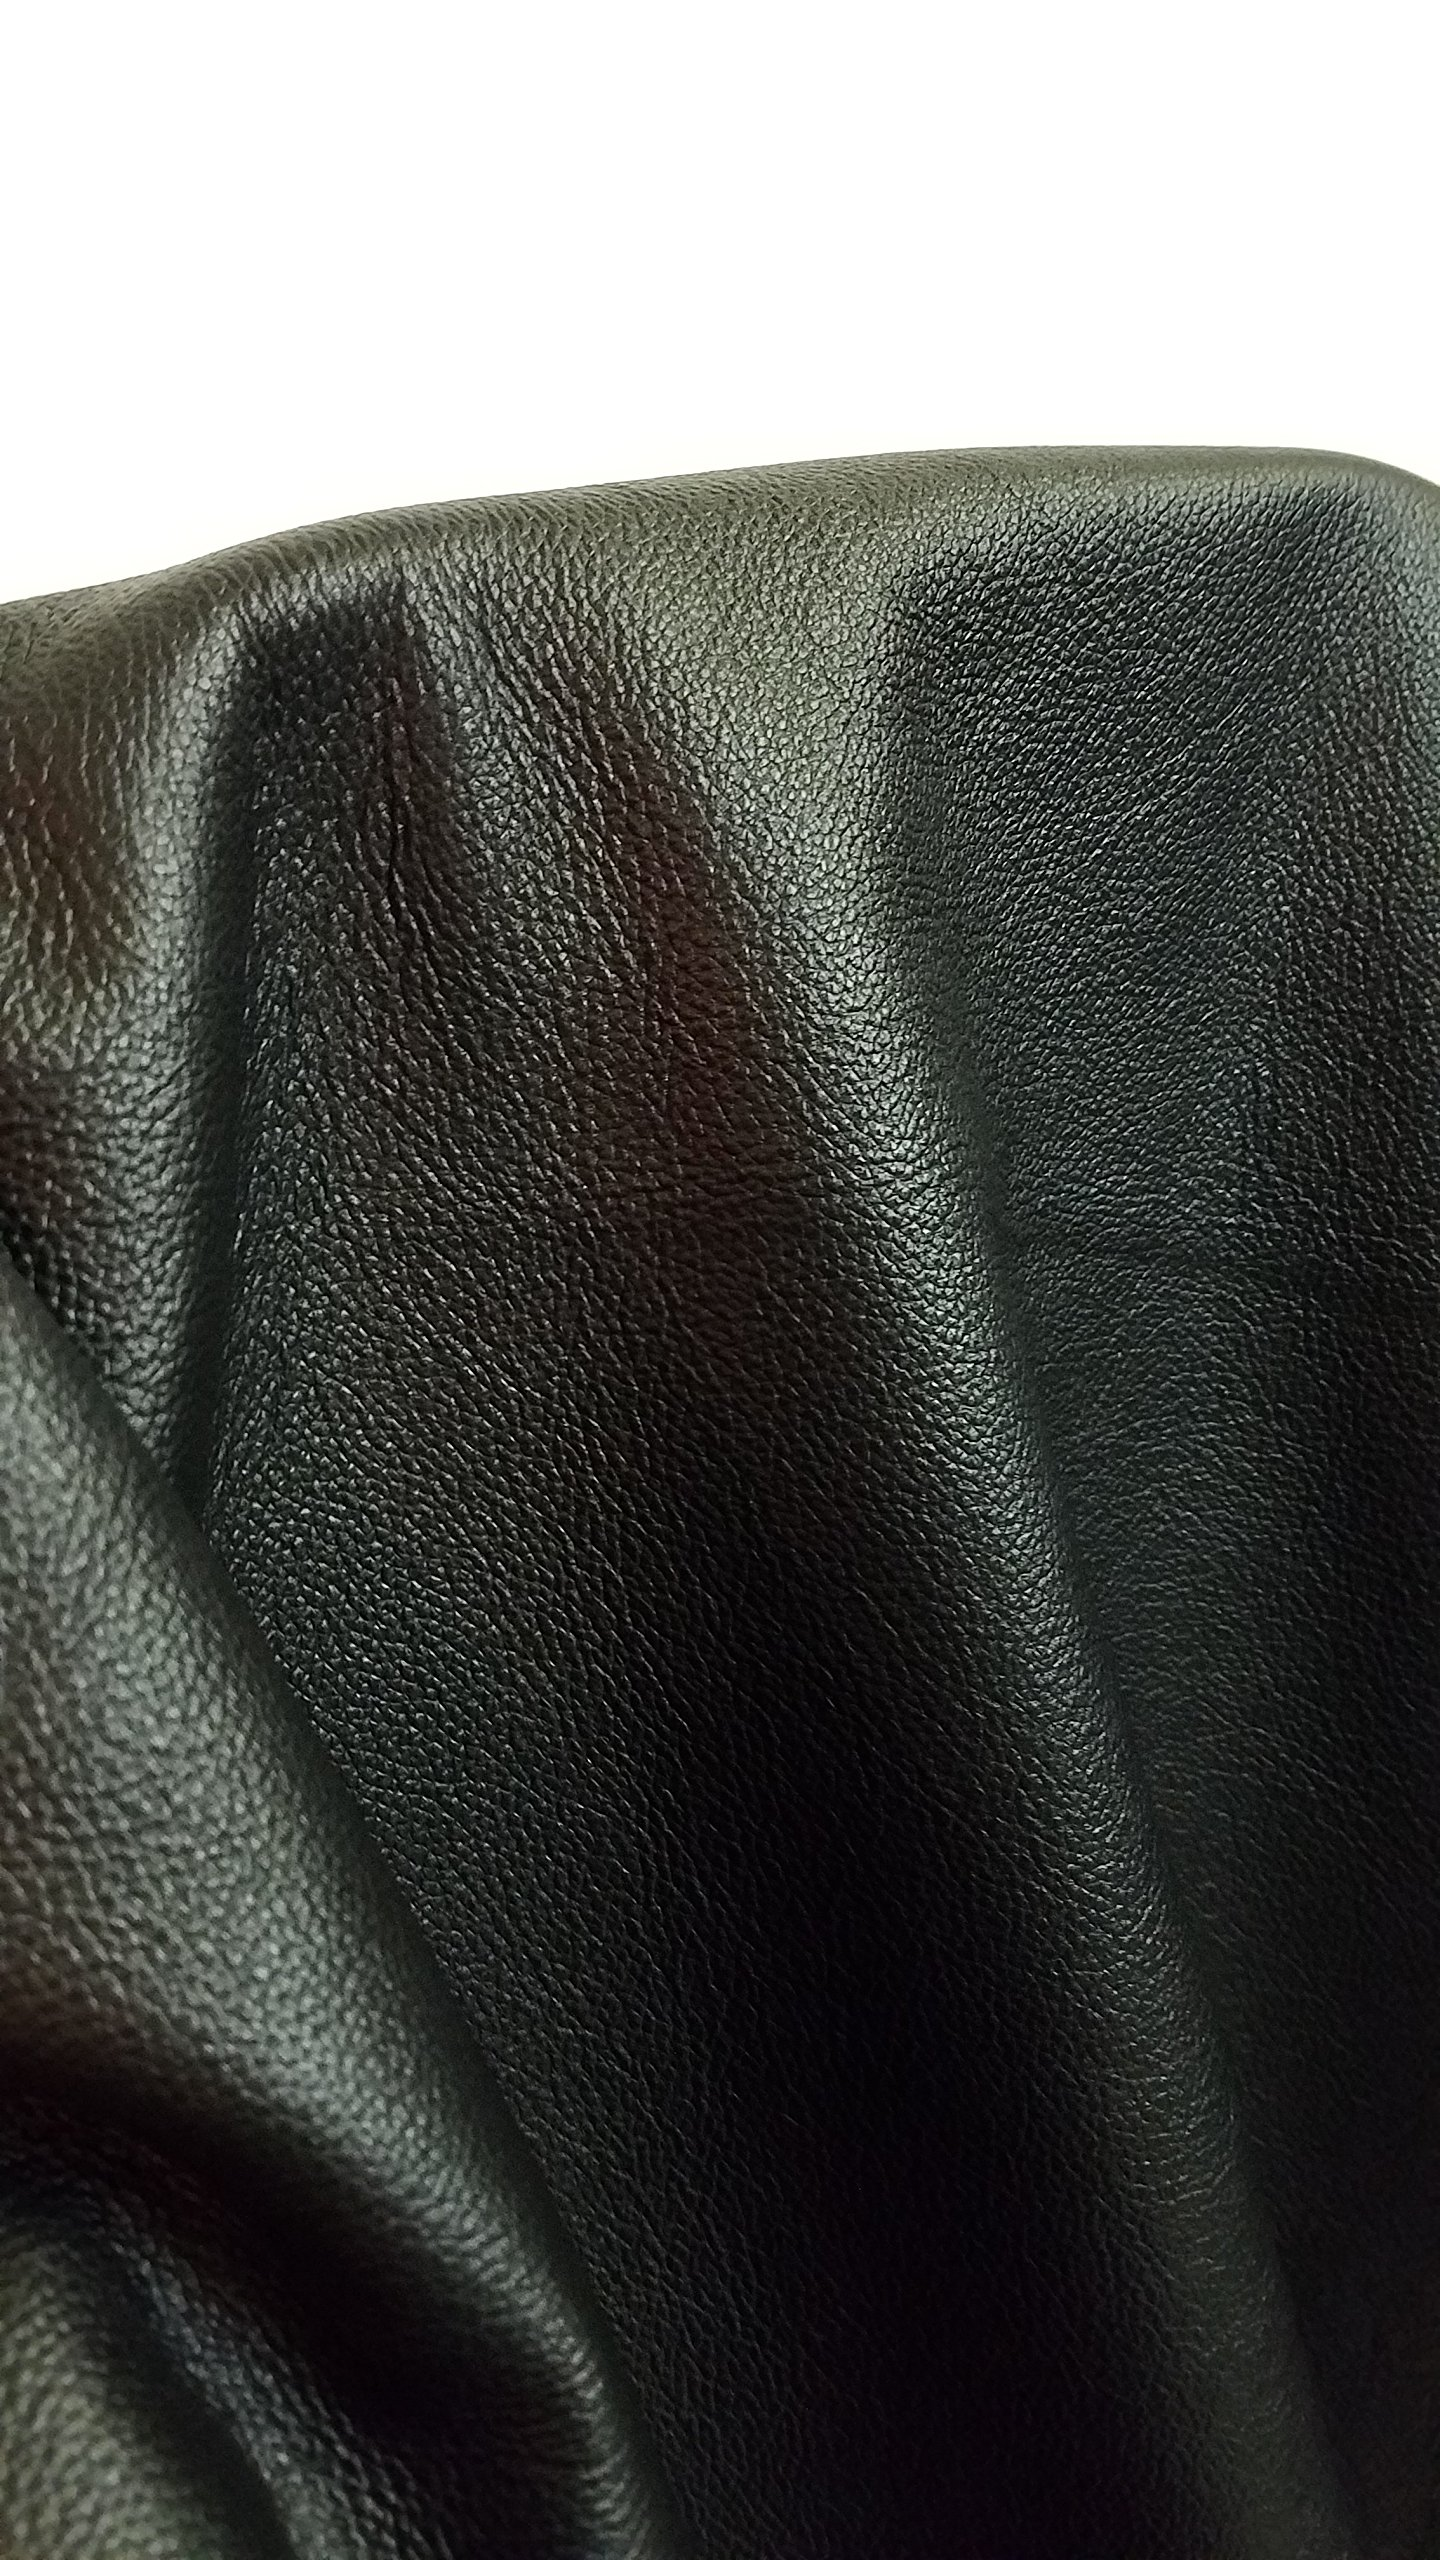 Black Upholstery Pebble Grain Cowhide Leather Various Size (20''x30'' inch Cutting) for Handbag, Footwear, Upholstery Repairs by NAT Leathers (Image #1)